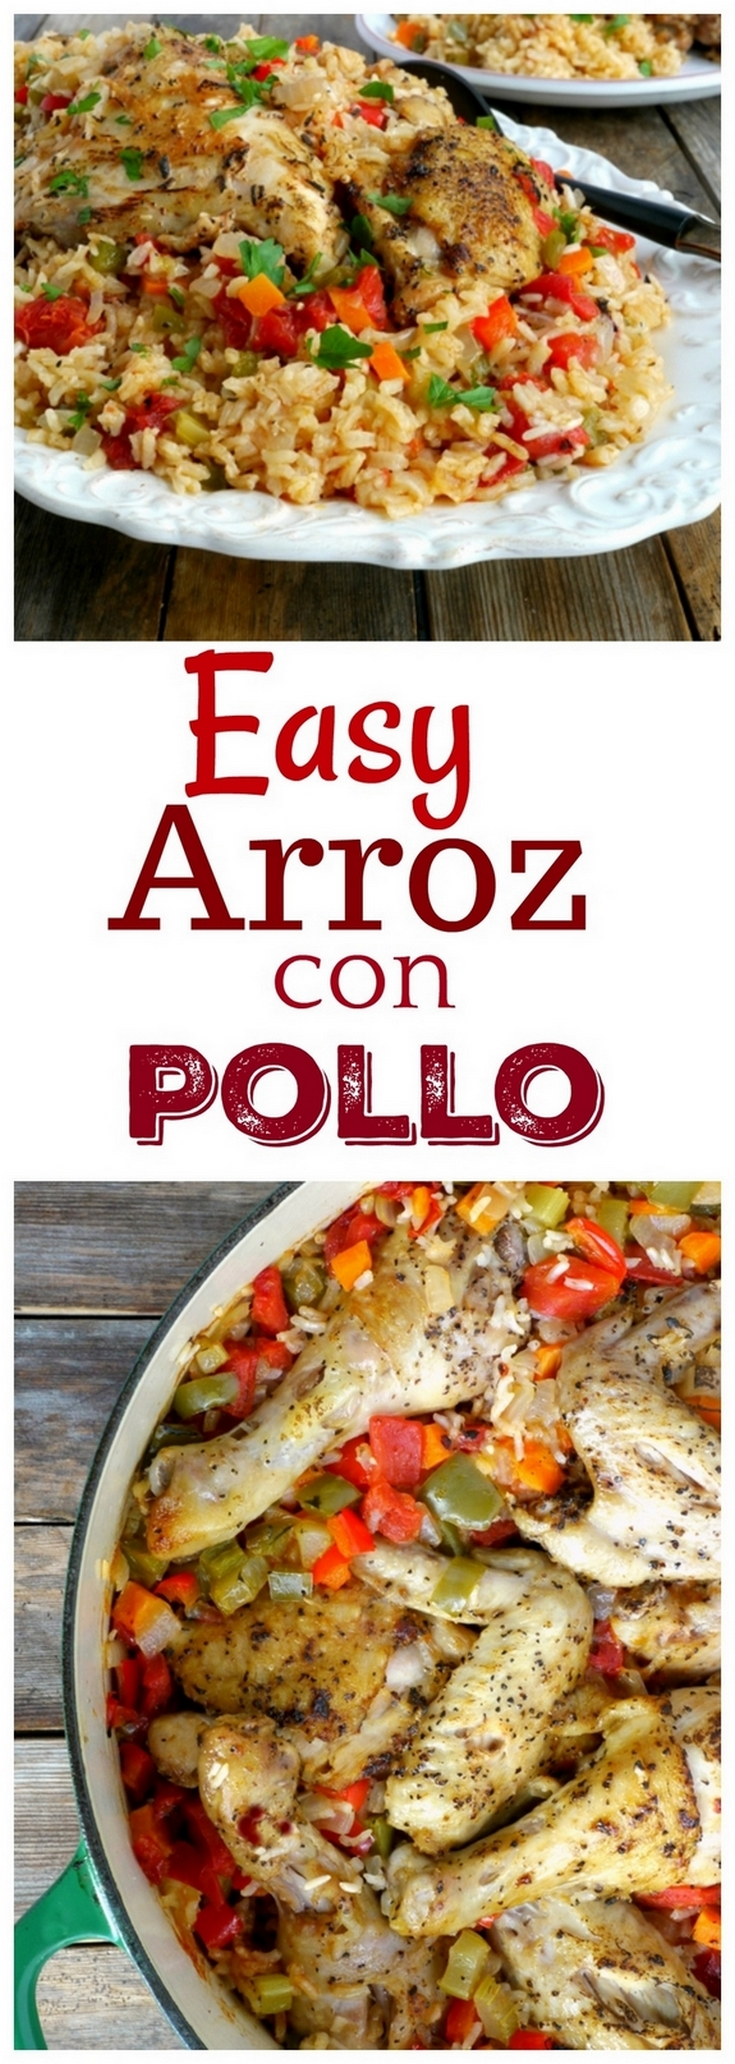 If you are craving a simple comfort food dish, look no further, this Easy Arroz con Pollo is sure to please. And it makes enough for lots of leftovers during the week from NoblePig.com. via @cmpollak1